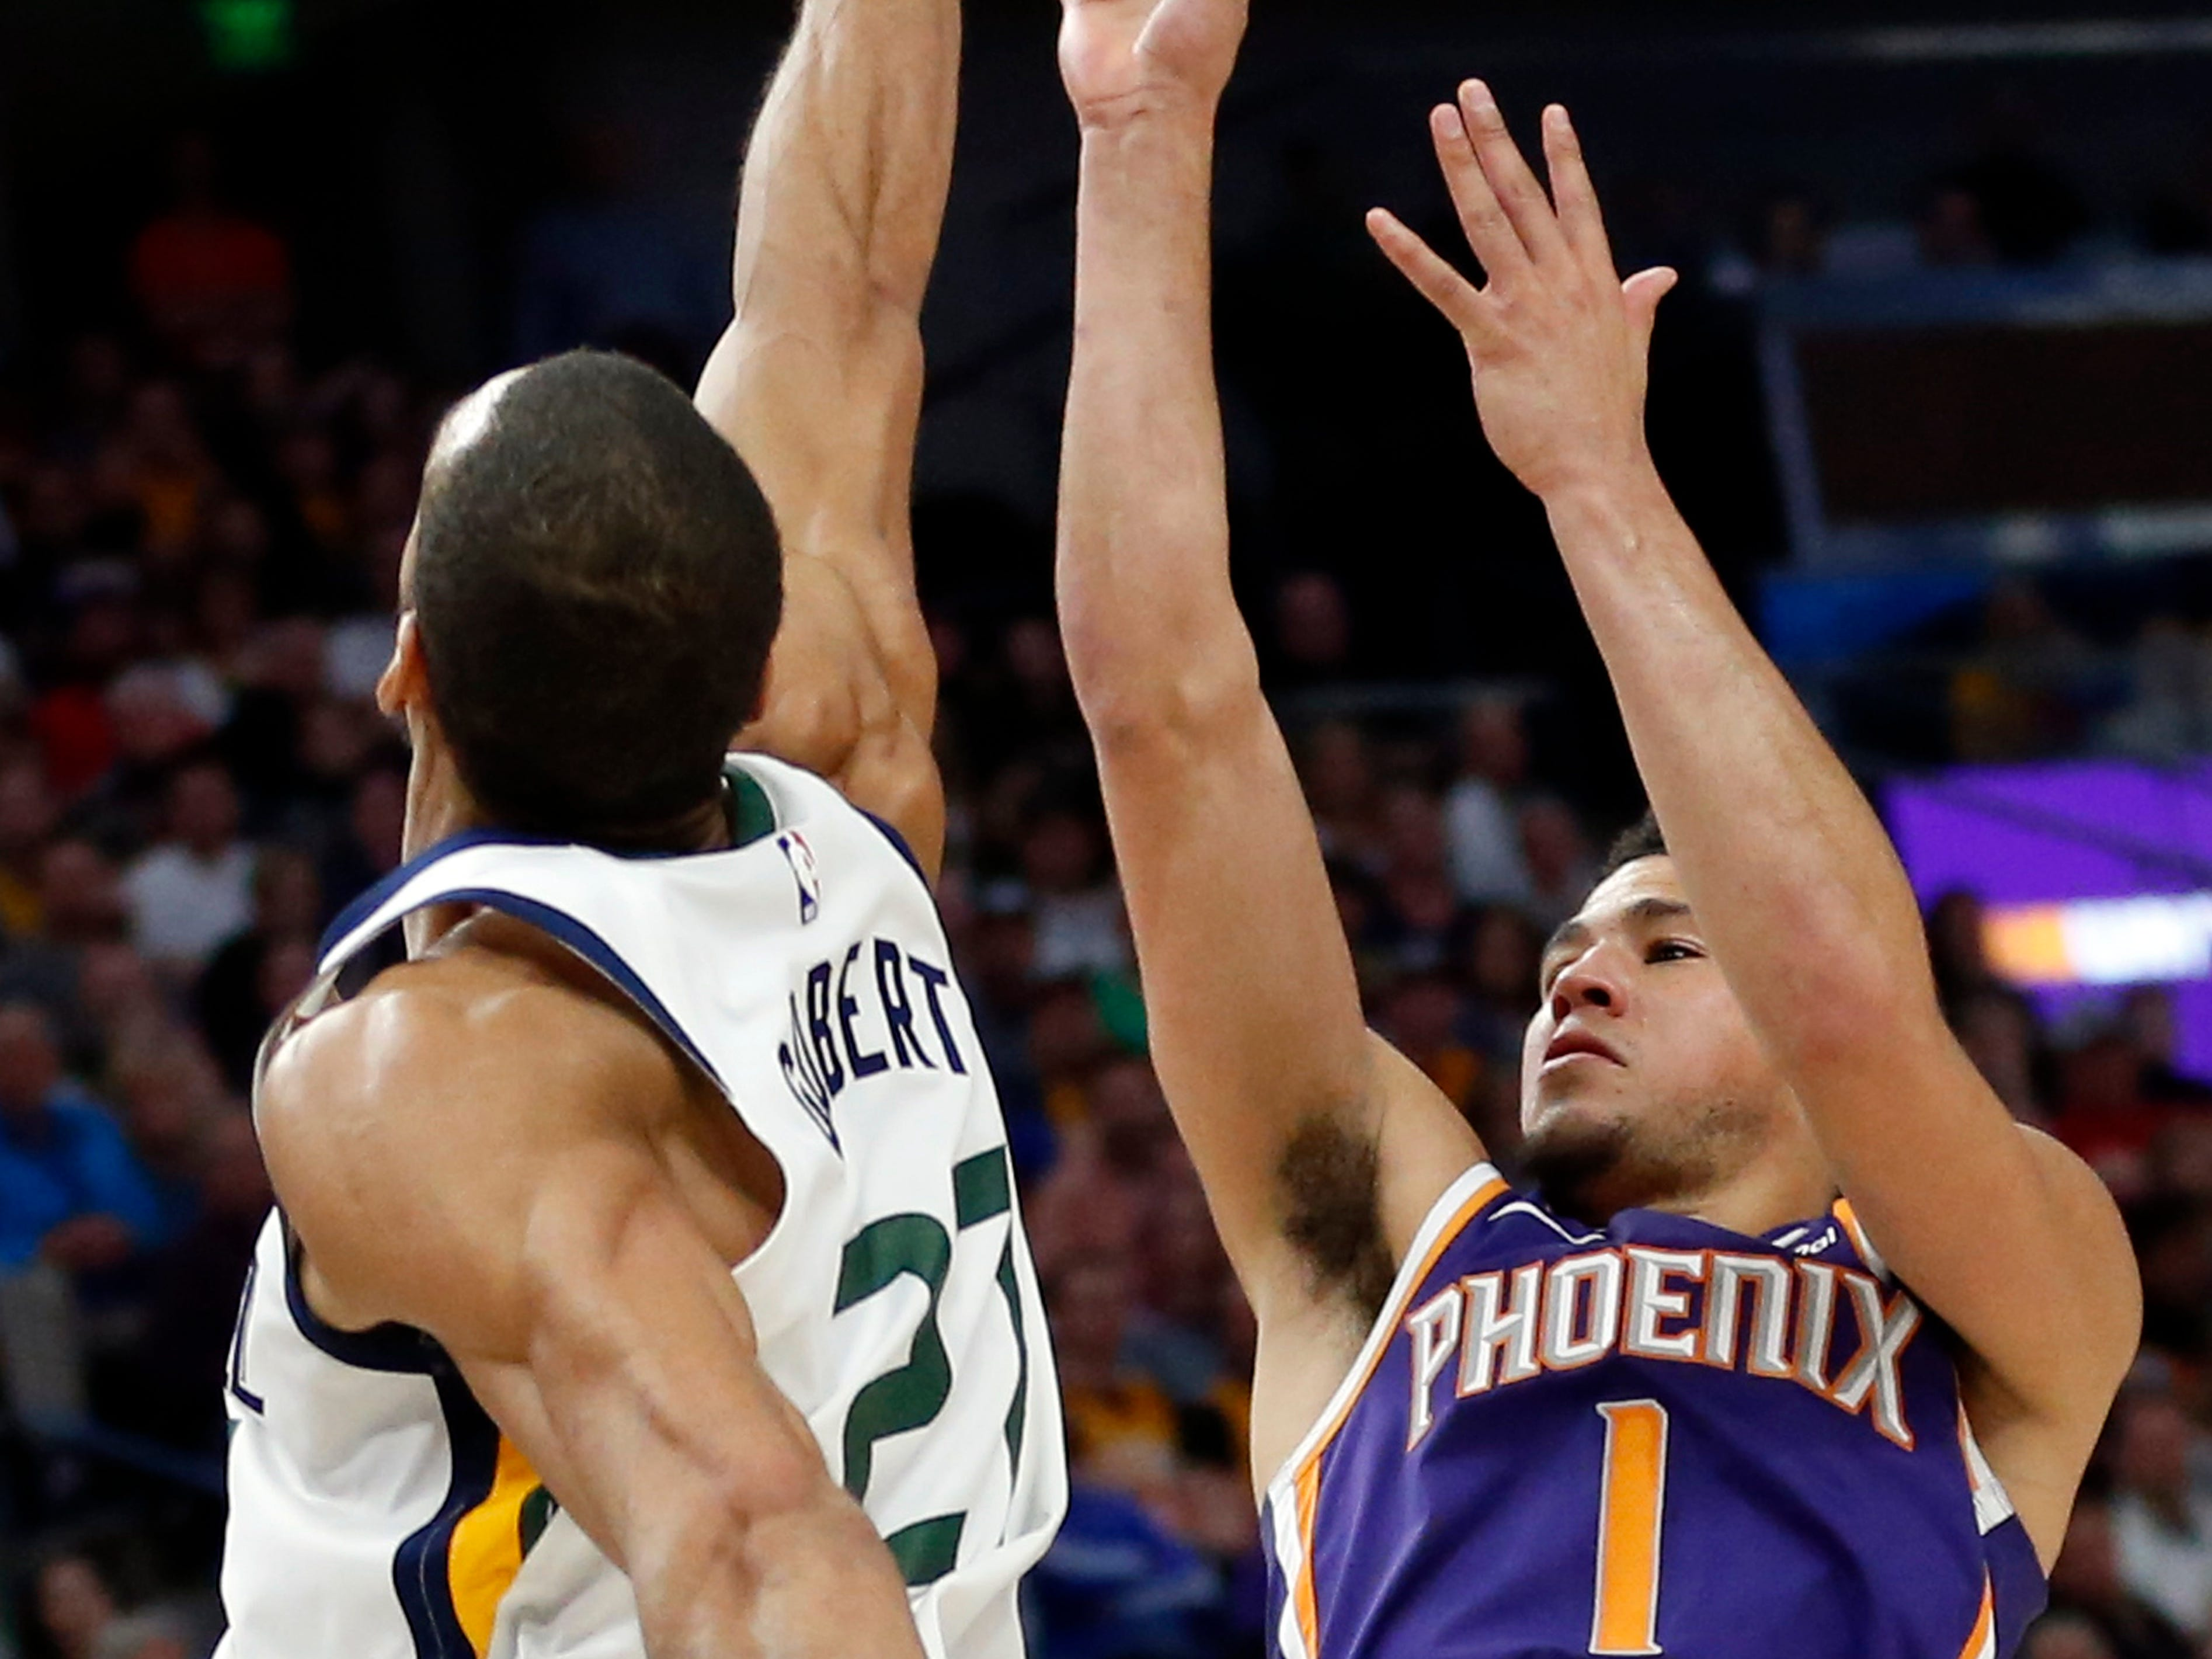 Utah Jazz center Rudy Gobert (27) blocks the shot of Phoenix Suns guard Devin Booker (1) during the first half of an NBA basketball game Monday, March 25, 2019, in Salt Lake City.